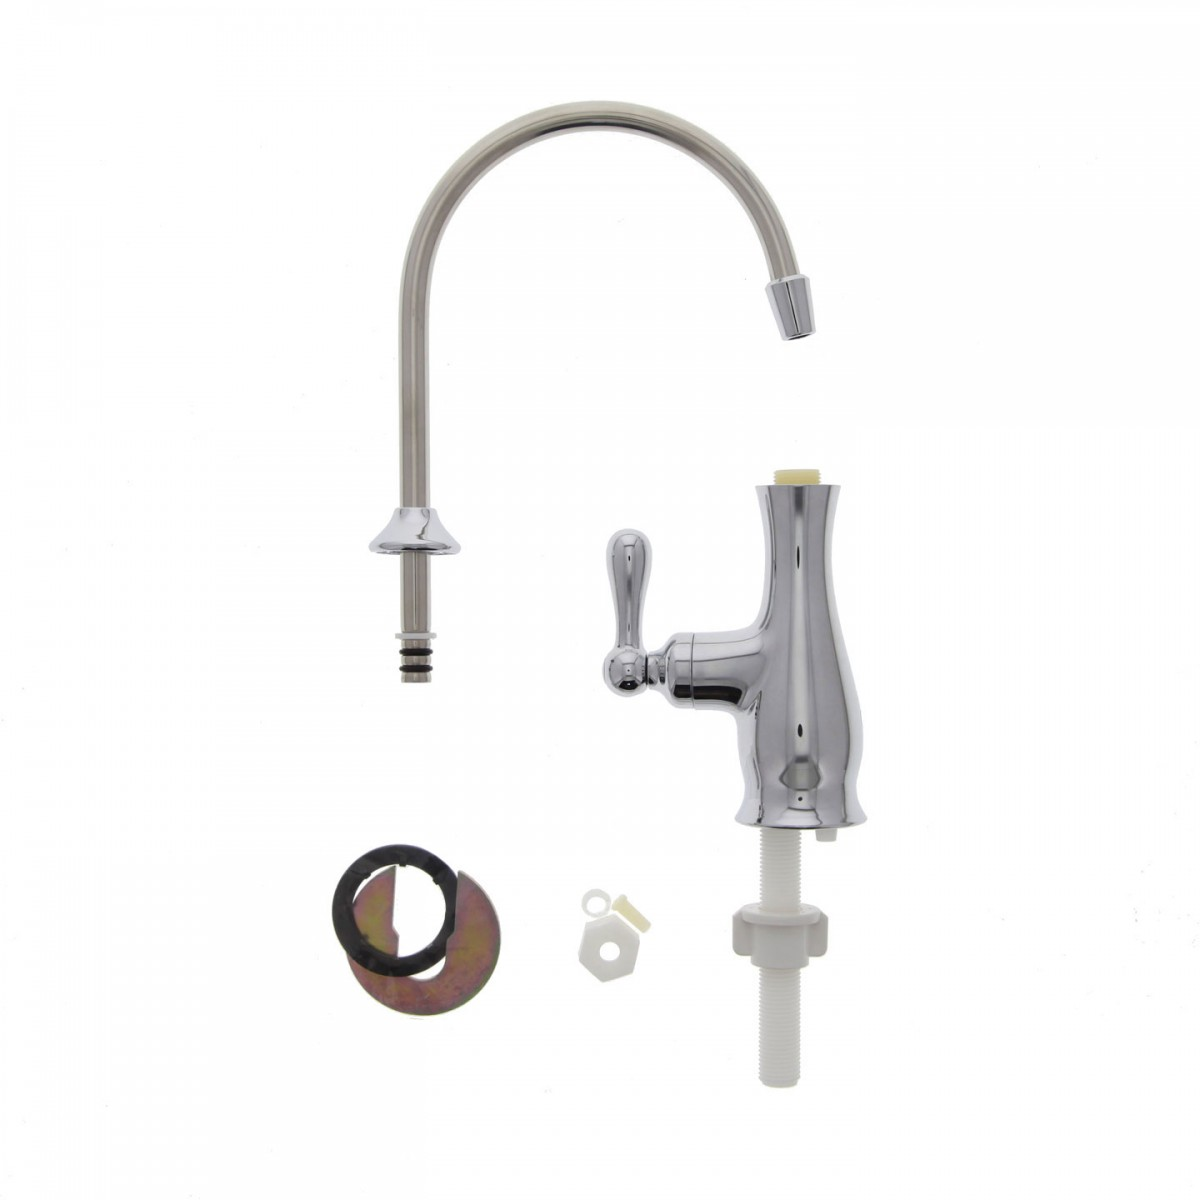 3M Filtrete FAUC-RP-01 Drinking Water Faucet | DiscountFilterStore.com